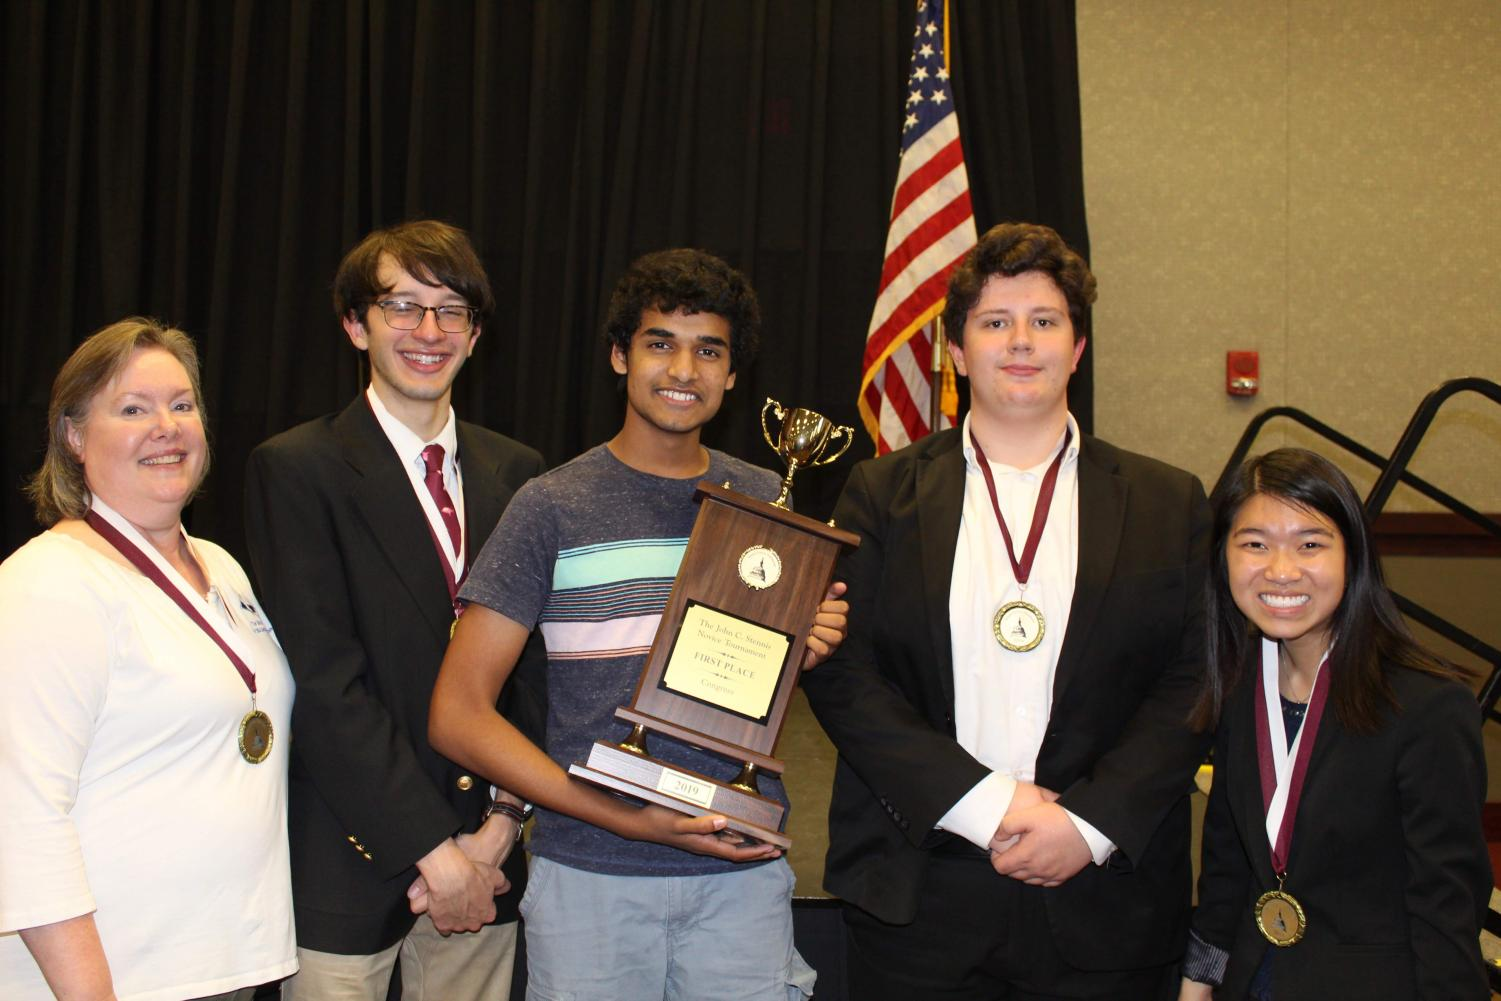 Several MSMS students took home awards, and MSMS won Best Overall.